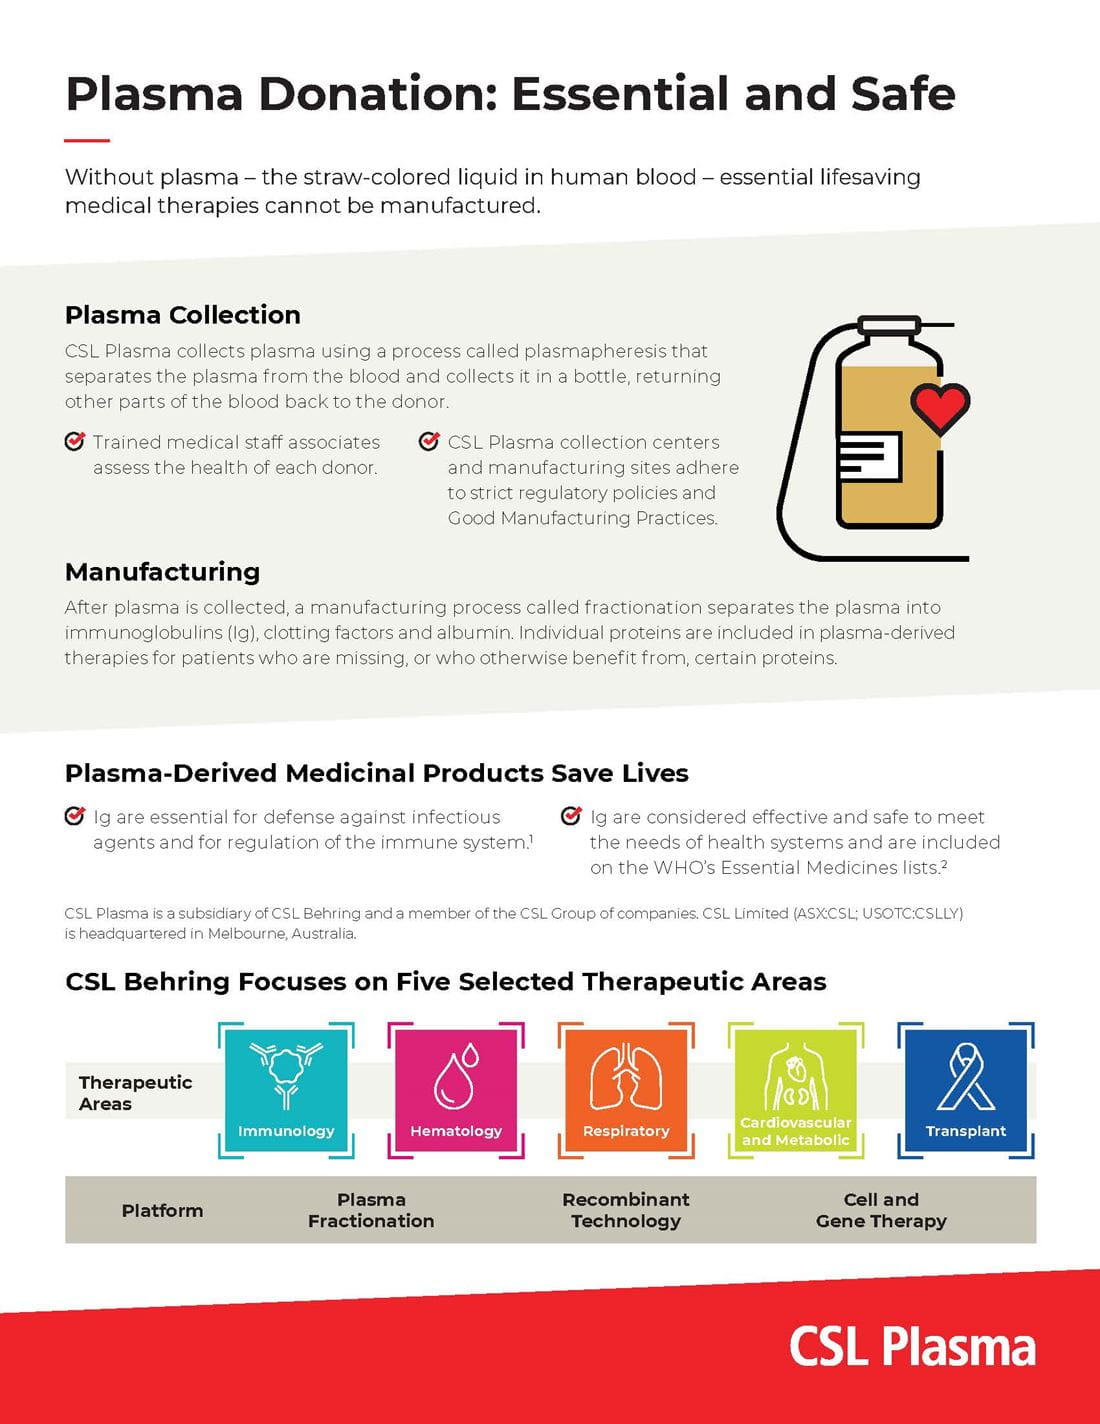 Infographic about Safety of Plasma Donation